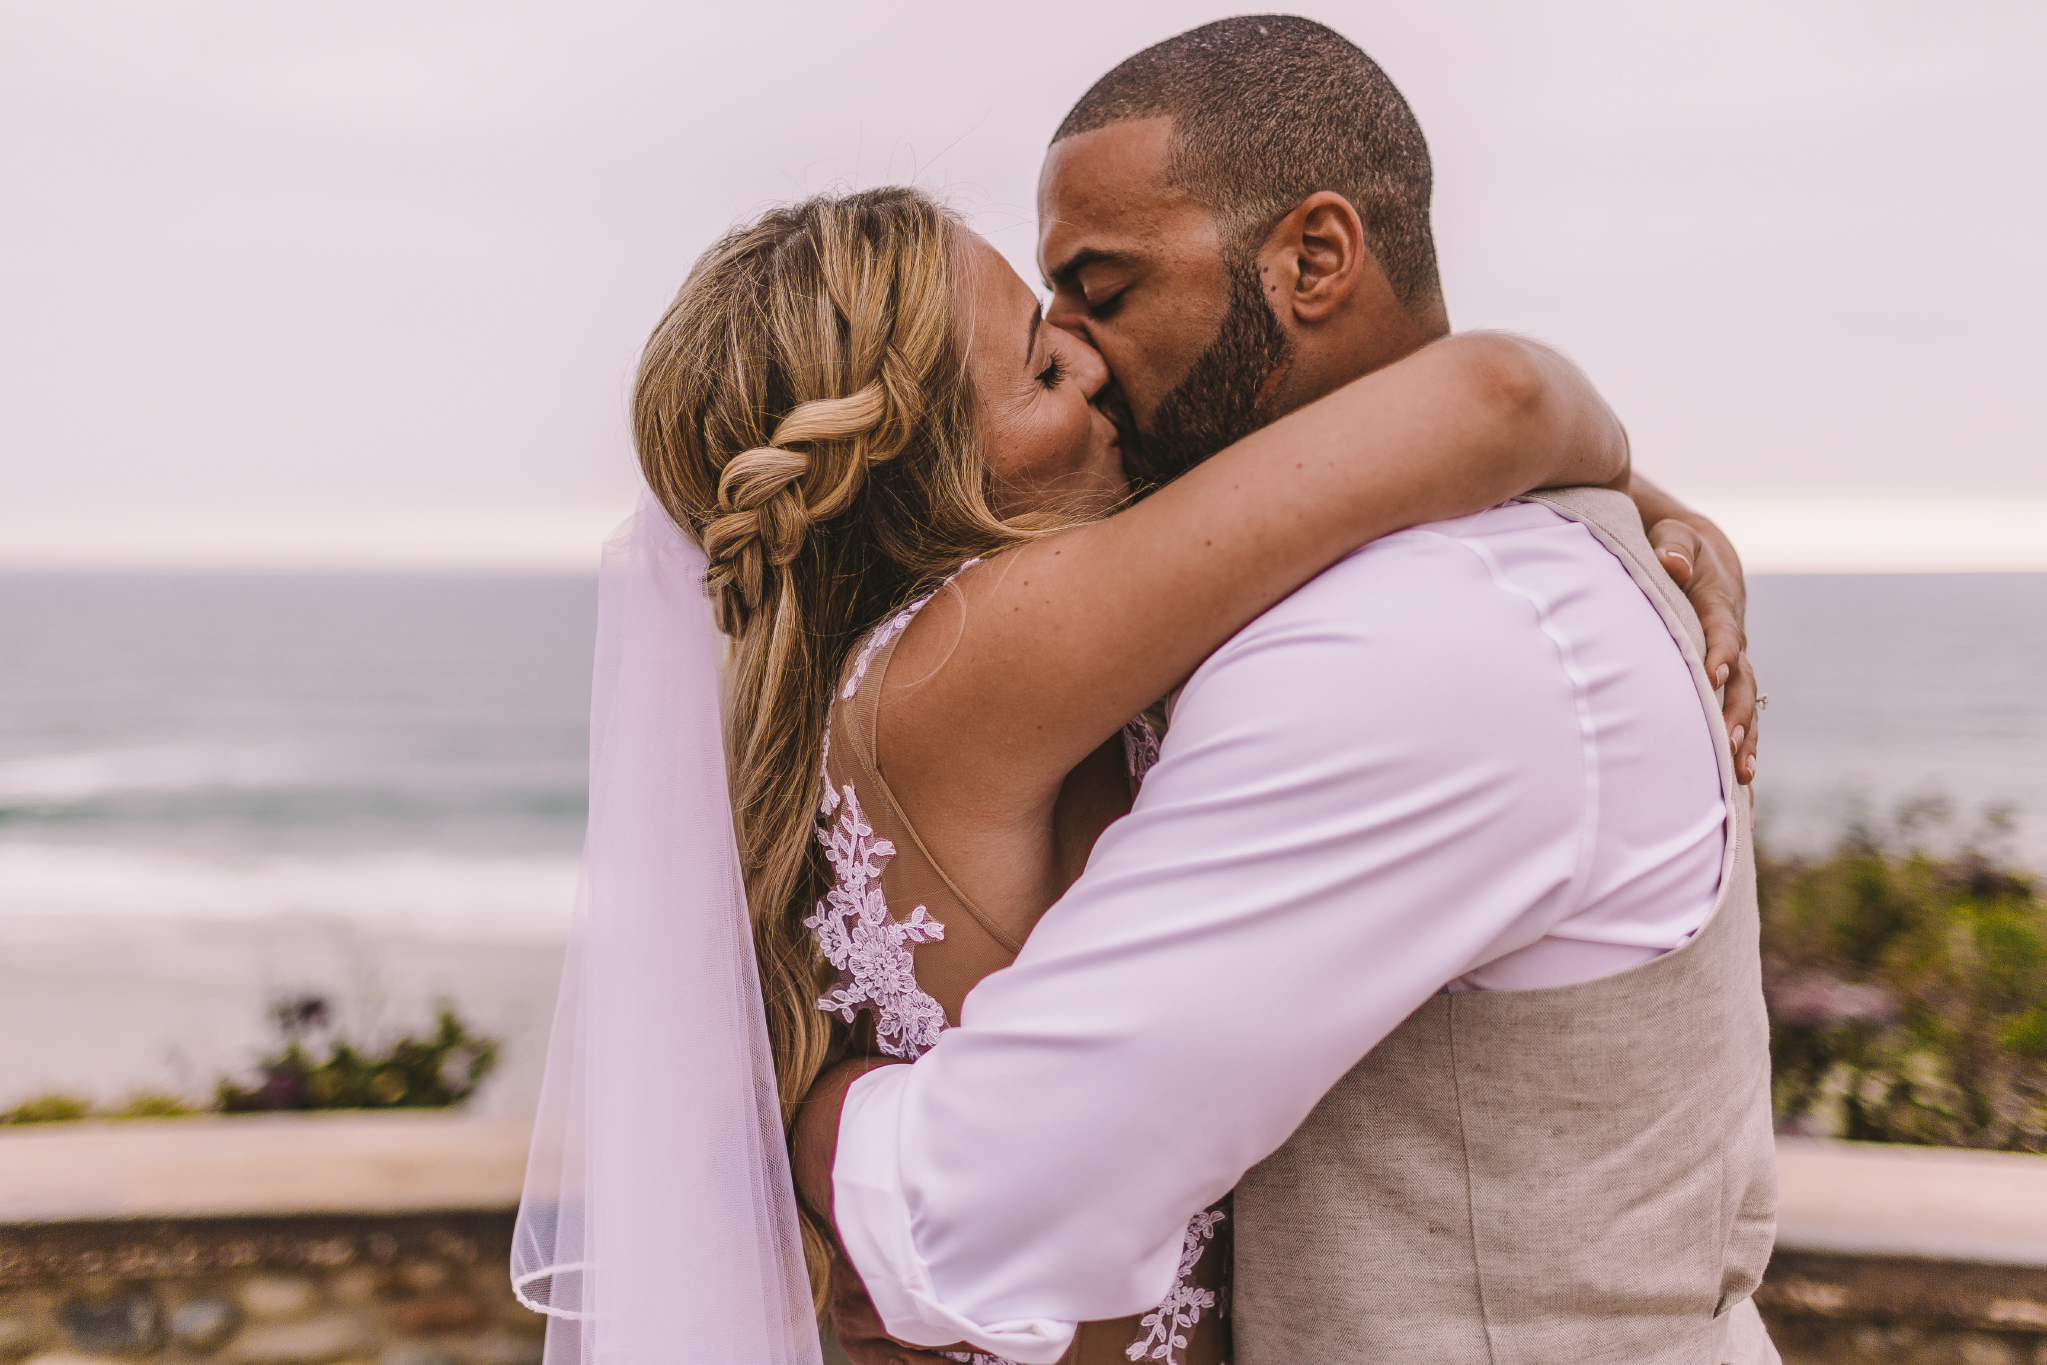 san diego wedding   photographer | married couple kissing each other with bride's arms around   groom's back and neck